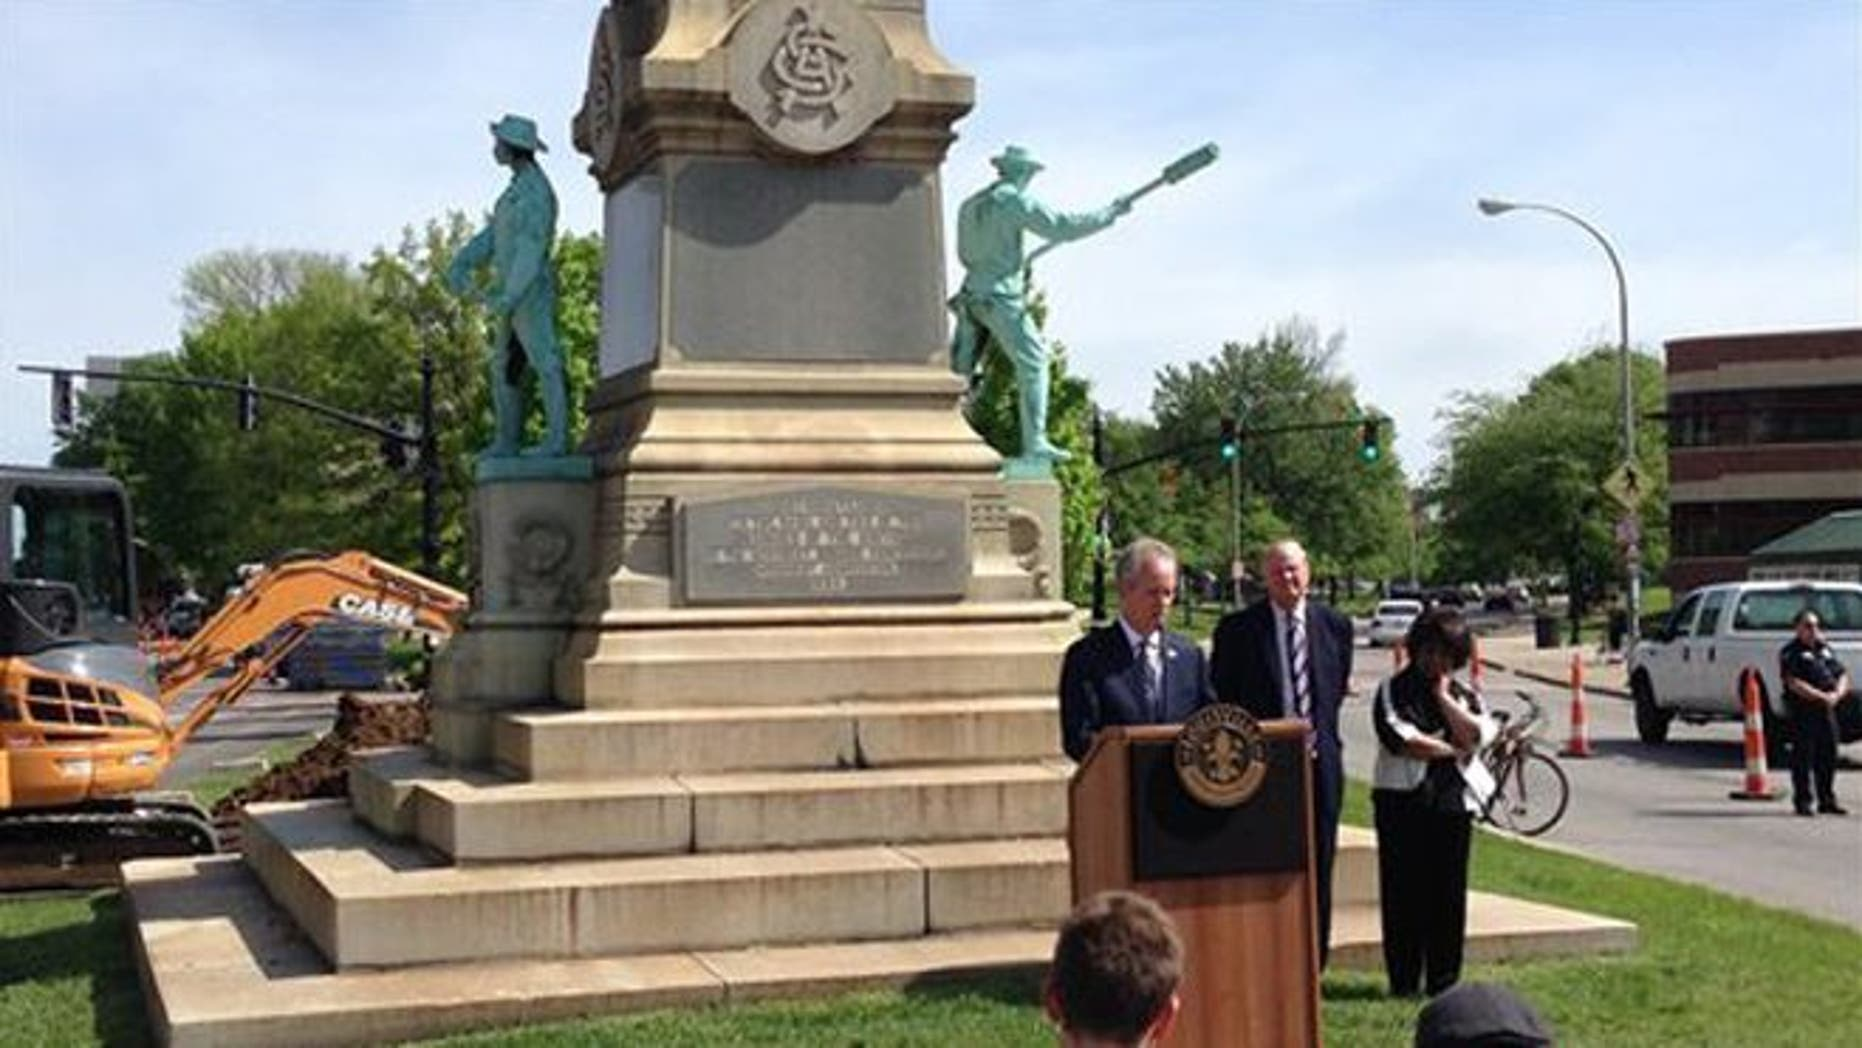 Louisville Mayor Greg Fischer speaks in front of the Confederate monument near the University of Louisville with university President James Ramsey, left, in Louisville, Ky., Friday, April 29, 2016. The Confederate monument capped with a statue of Jefferson Davis will be removed from a spot near the University of Louisville campus where it has stood since 1895. (AP Photo/Dylan Lovan)